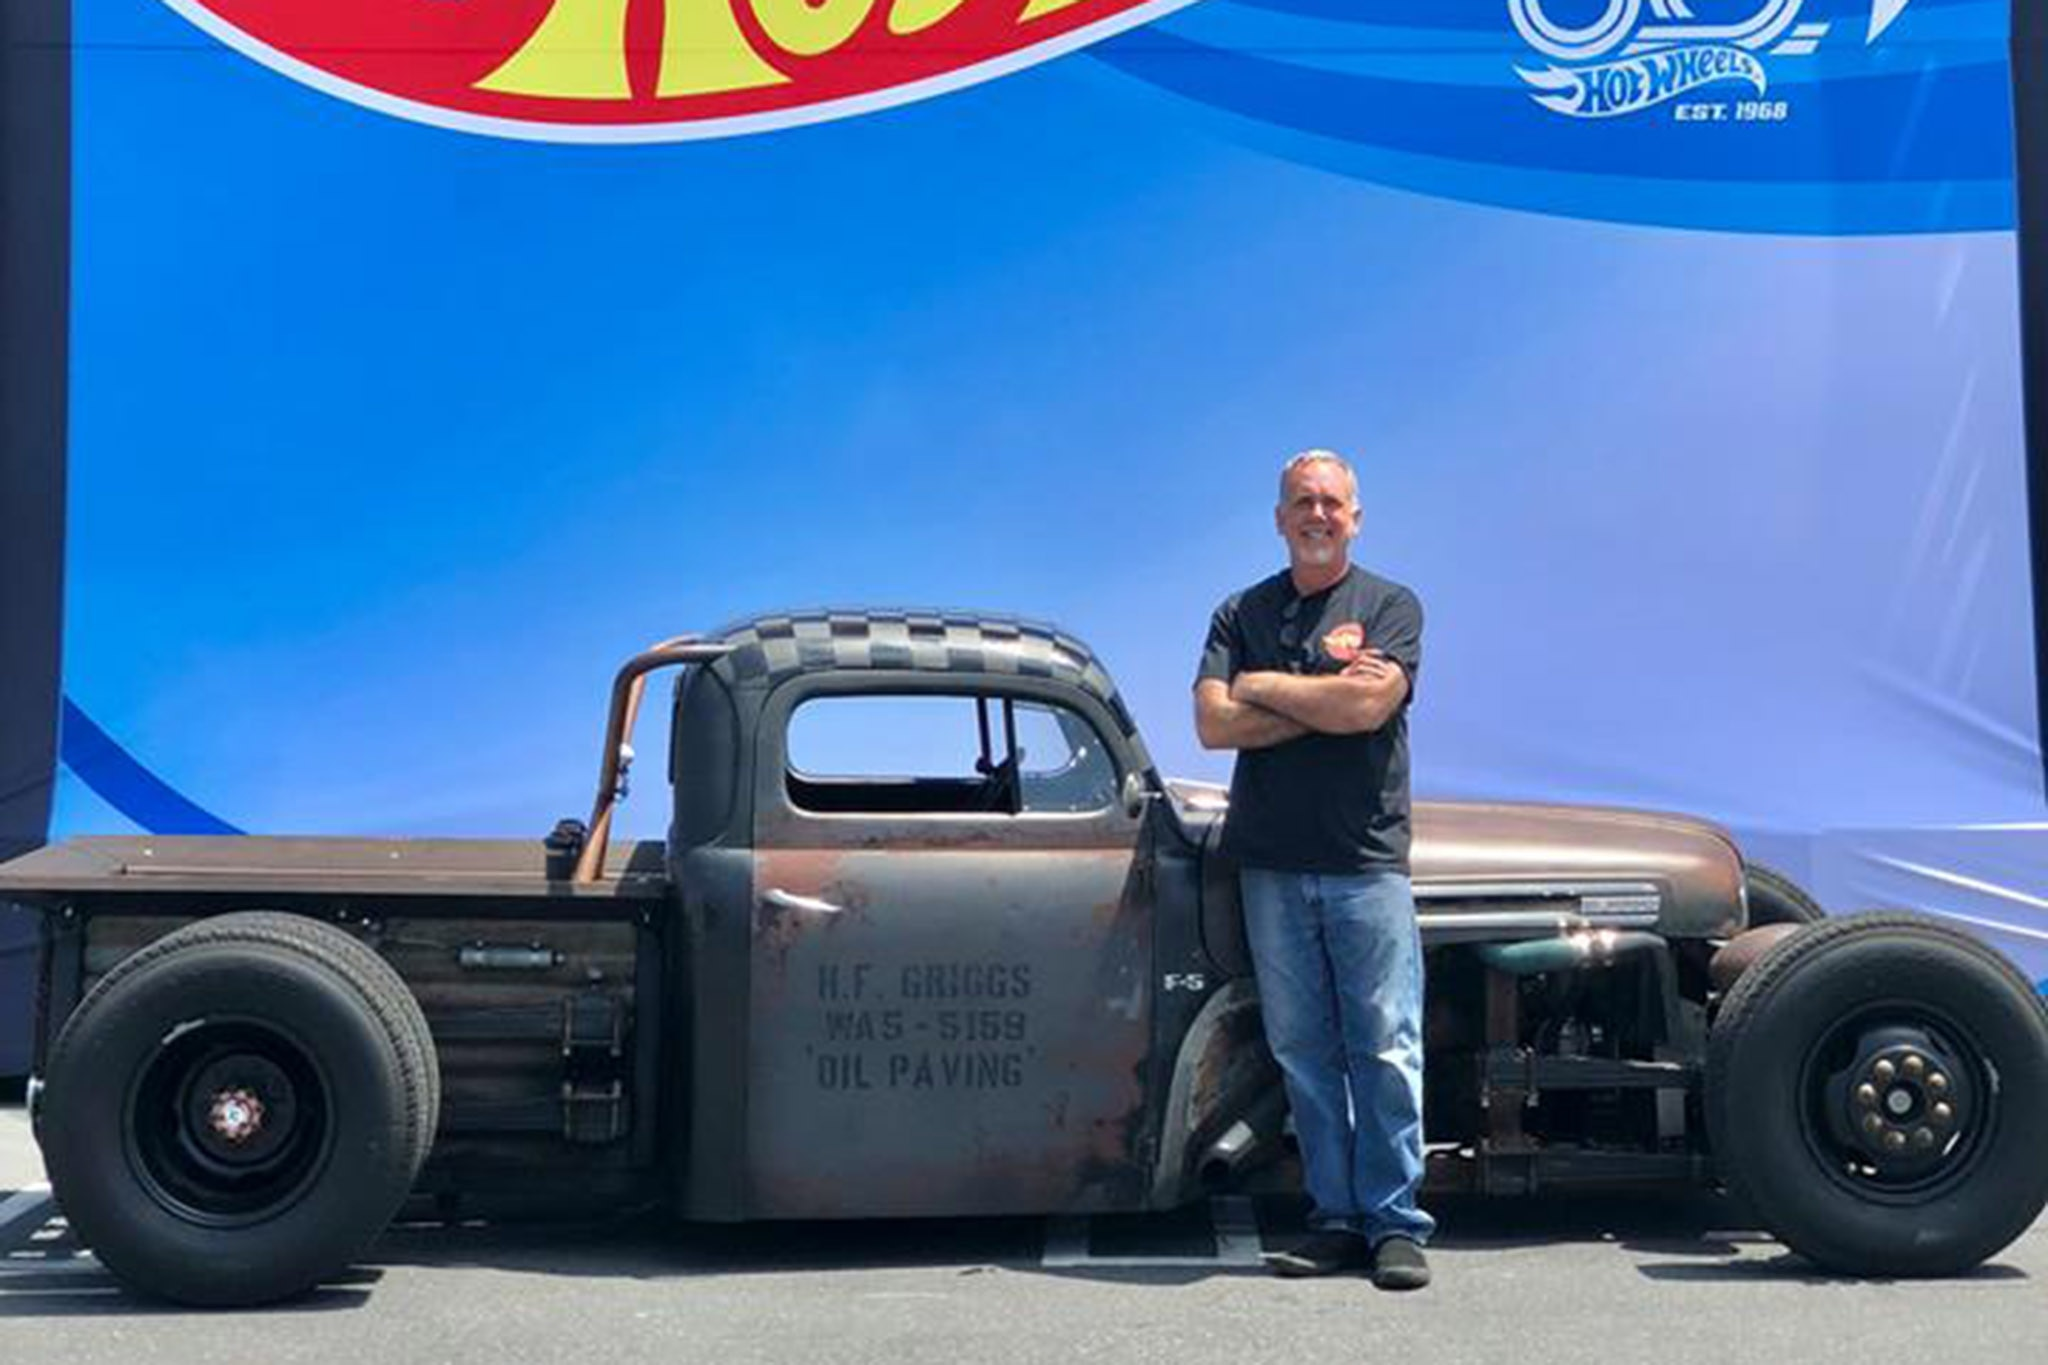 Hot Wheels Legends 50th Anniversary Tour Kicks Off With Jay Leno 1968 Chevy Truck Show More